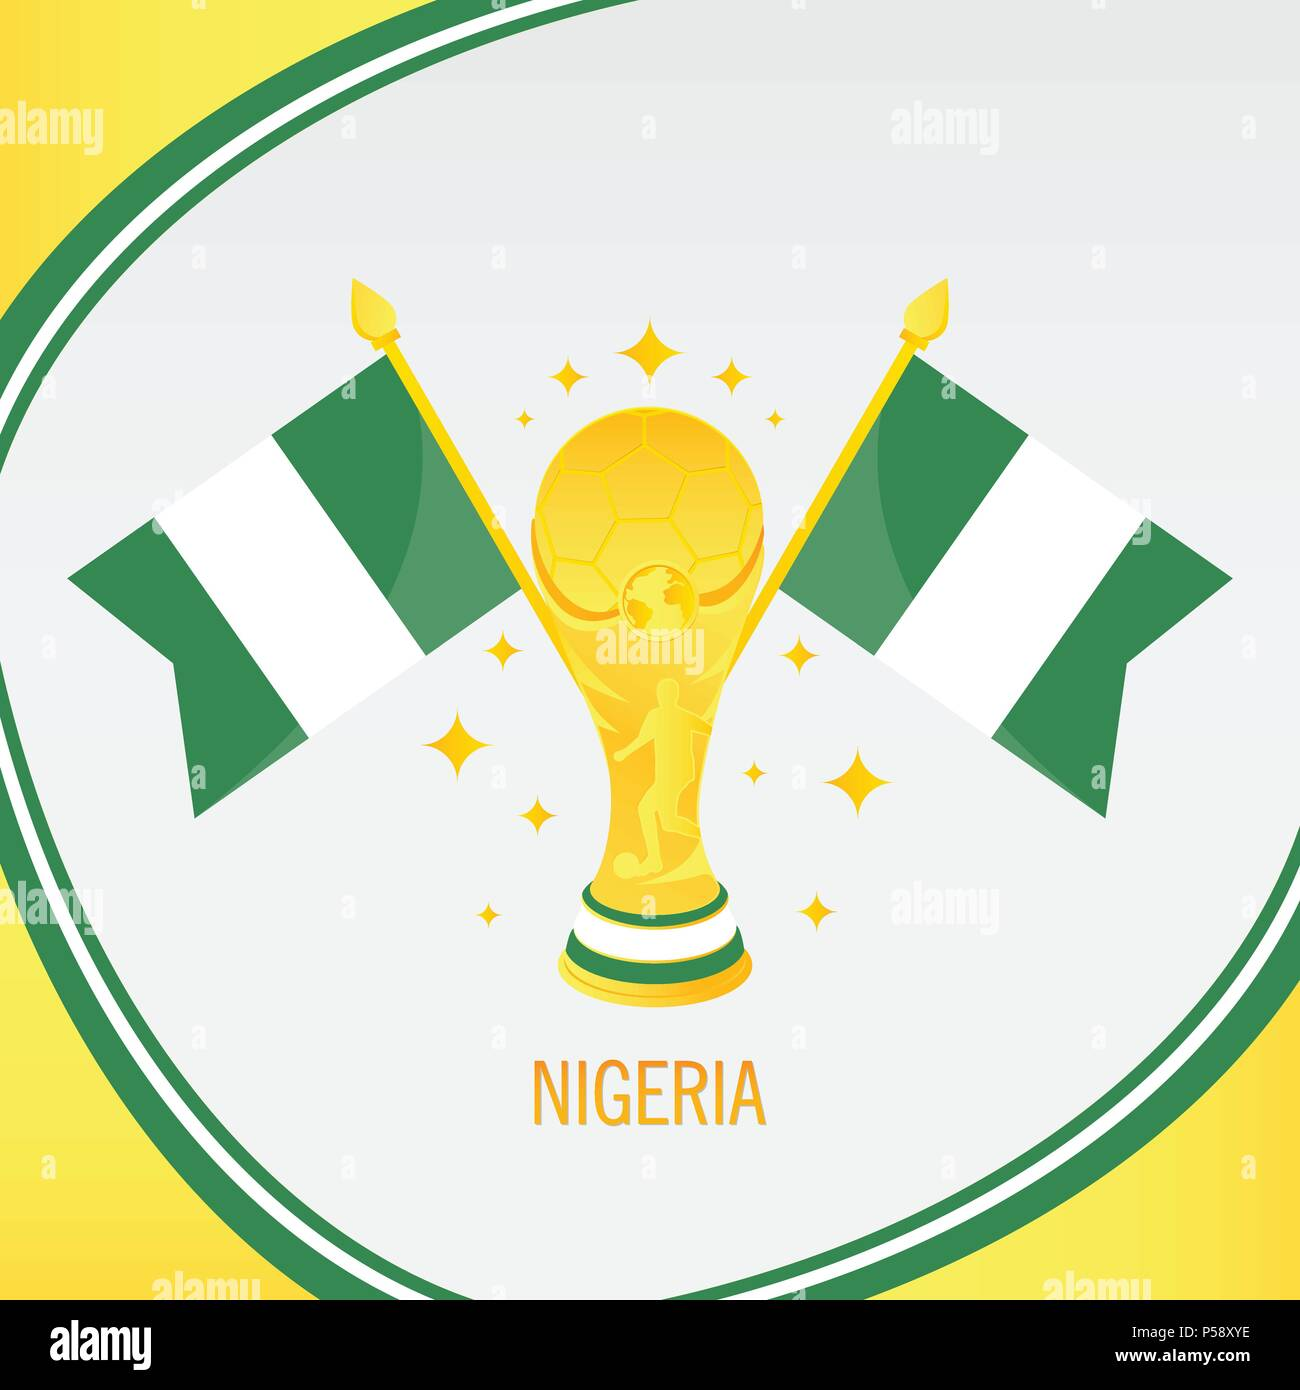 Nigeria Football Champion 2018 - Flag and Golden Trophy / Cup - Stock Vector